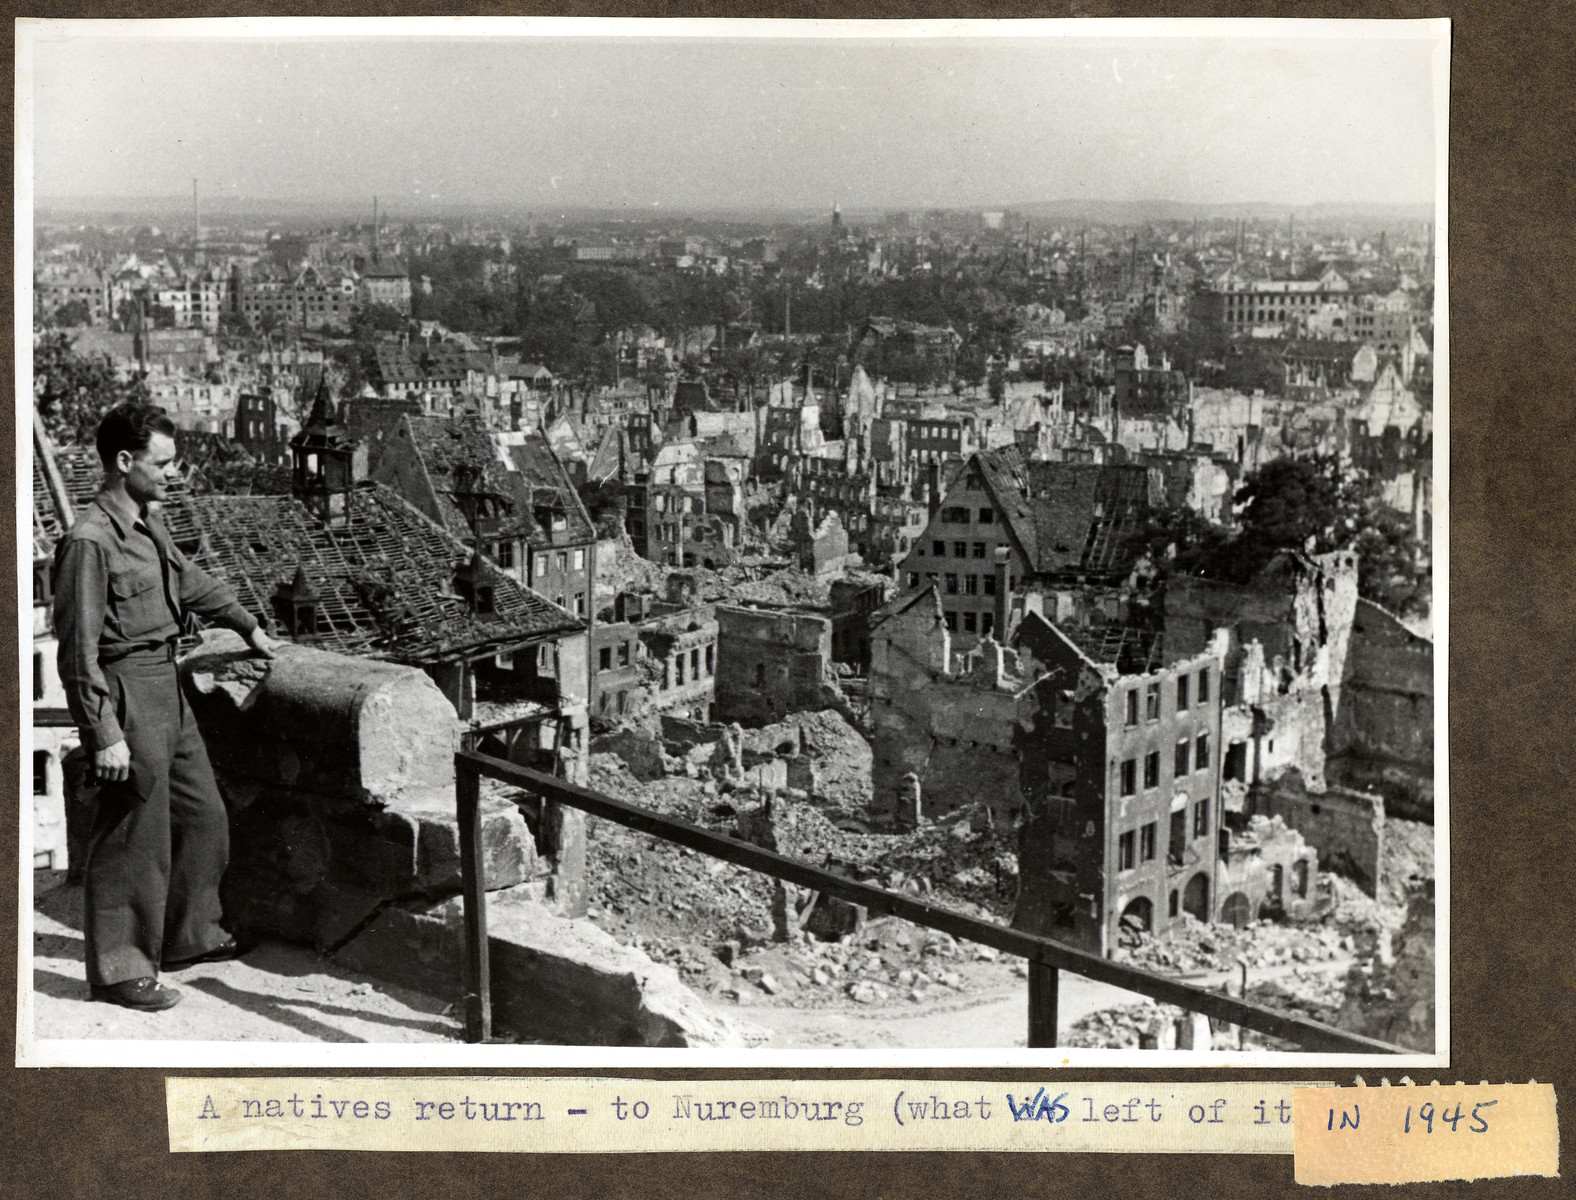 Joseph Eaton, an American solder who had been a German-Jewish refugee, surveys the bombed-out remains of Nuremberg, his hometown.